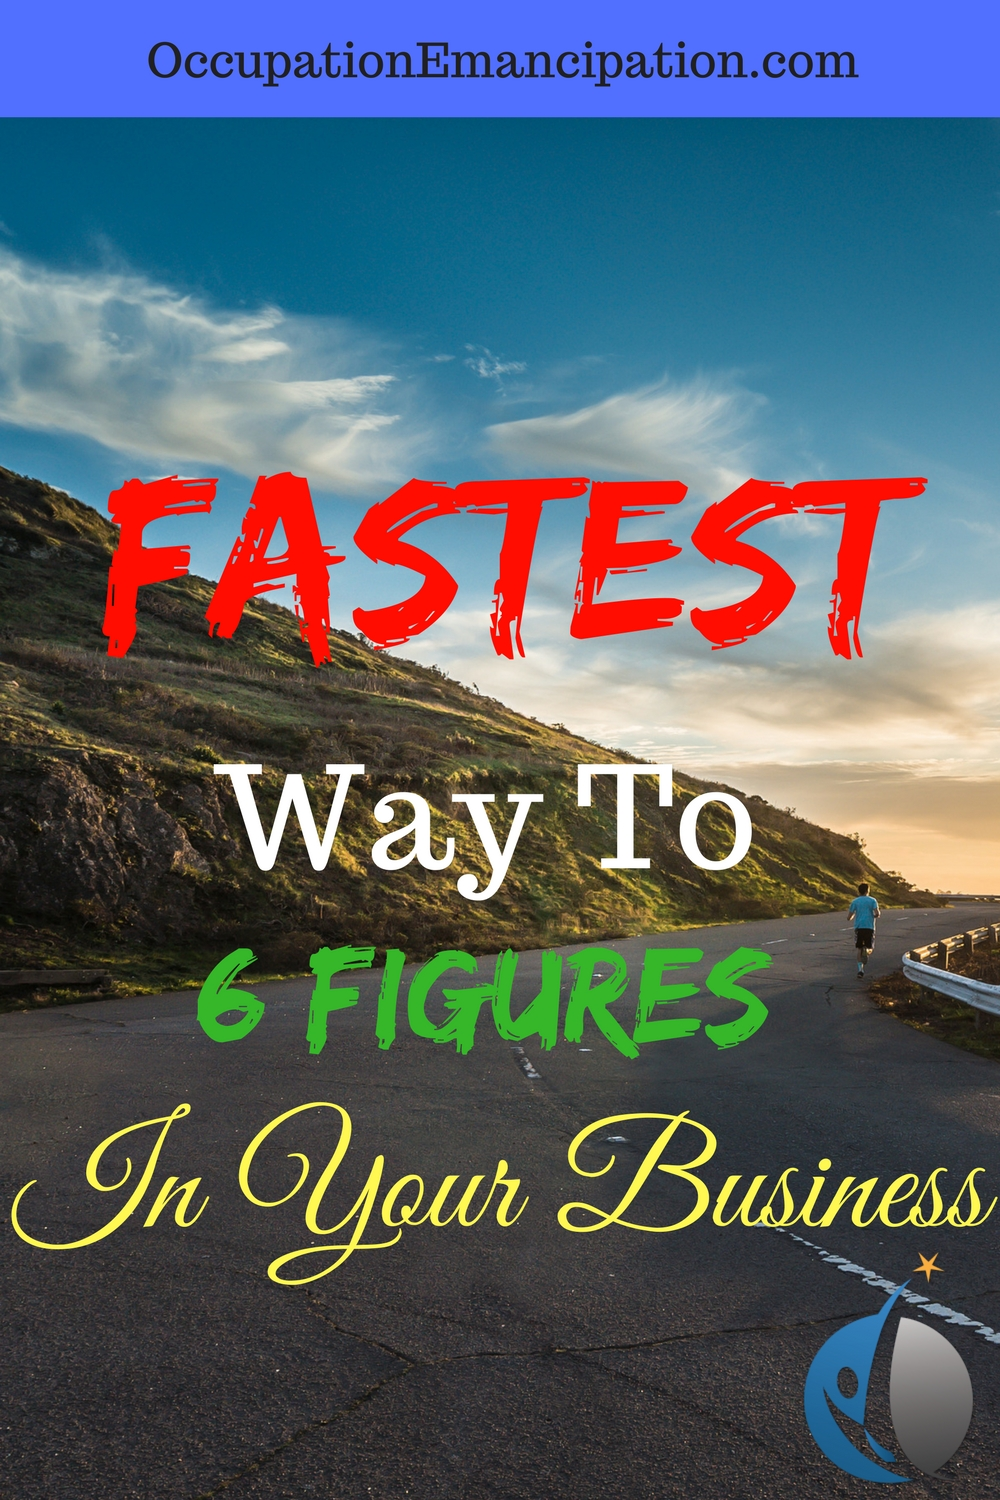 Fastest way to 6 figures in your business pinterest